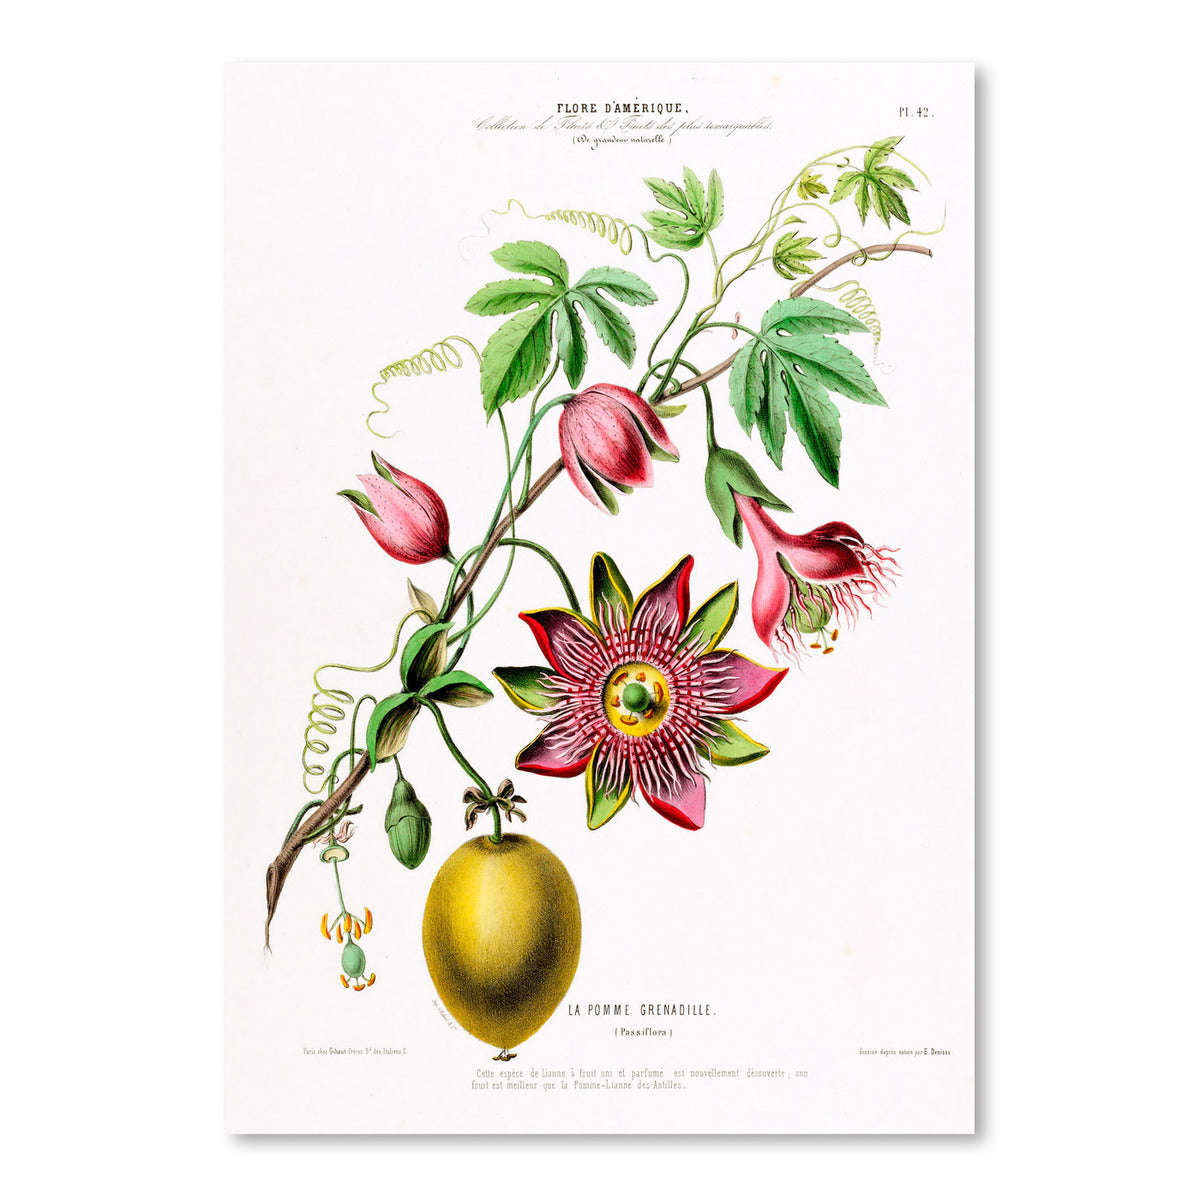 Flored Amerique Lapomme Grenadille by New York Botanical Garden Art Print - Art Print - Americanflat